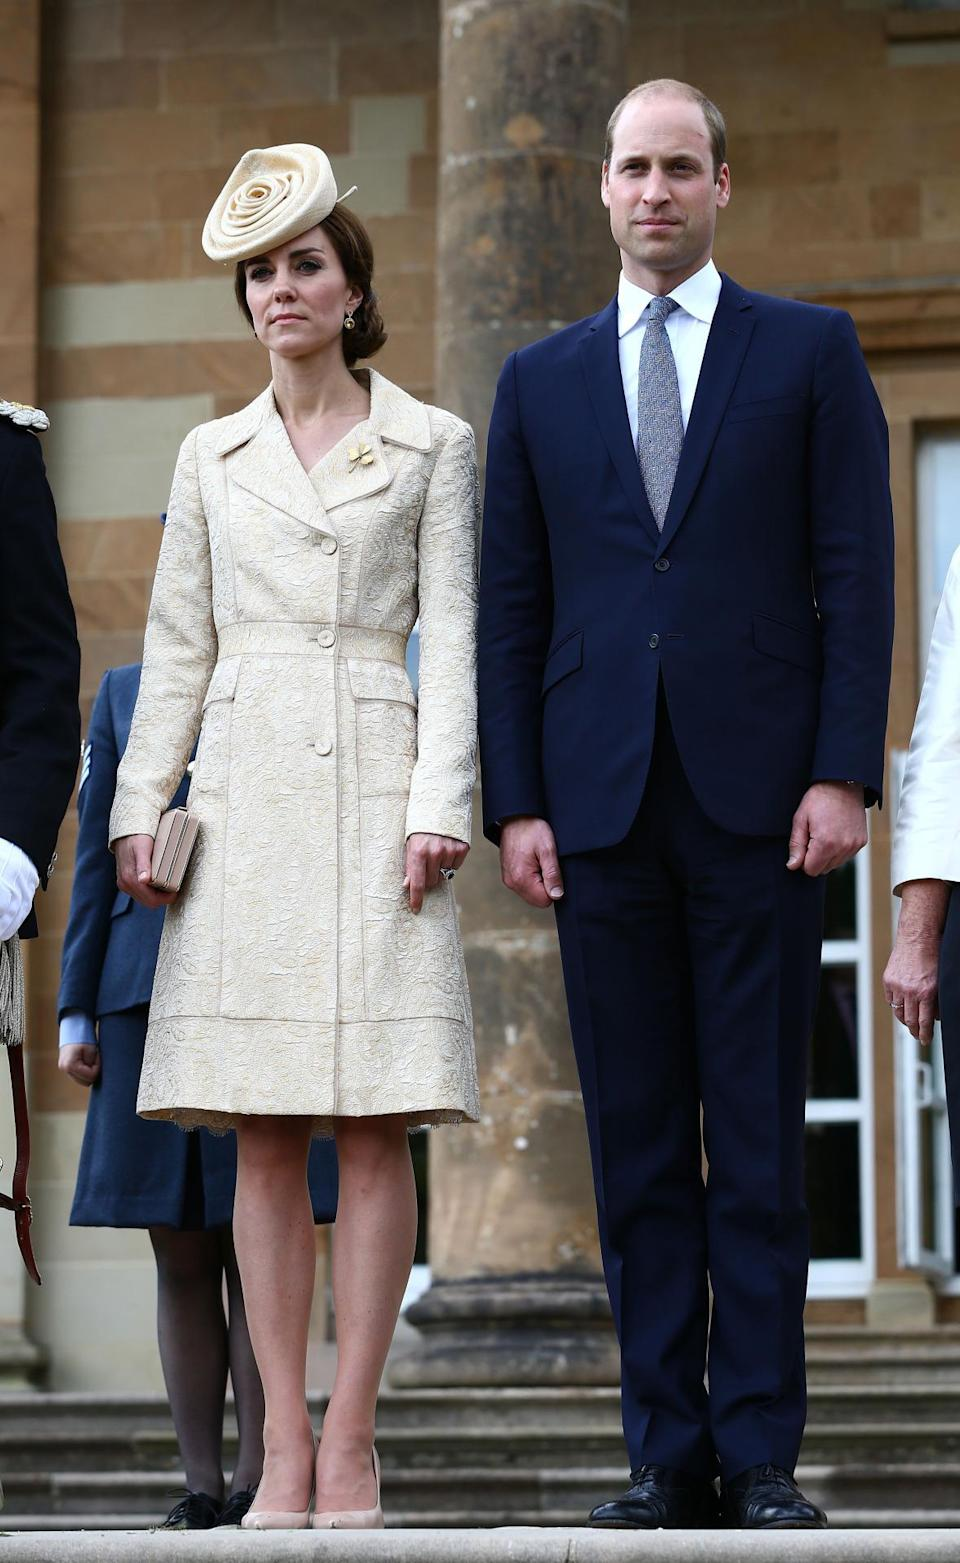 <p>Danish label Day Birger et Mikkelsen were the designers behind Kate's champagne brocade coat. A Lock & Co hat inspired by the morning rose flower topped off her outfit to a garden party hosted by Northern Ireland's Secretary of State.</p><p><i>[Photo: PA]</i></p>